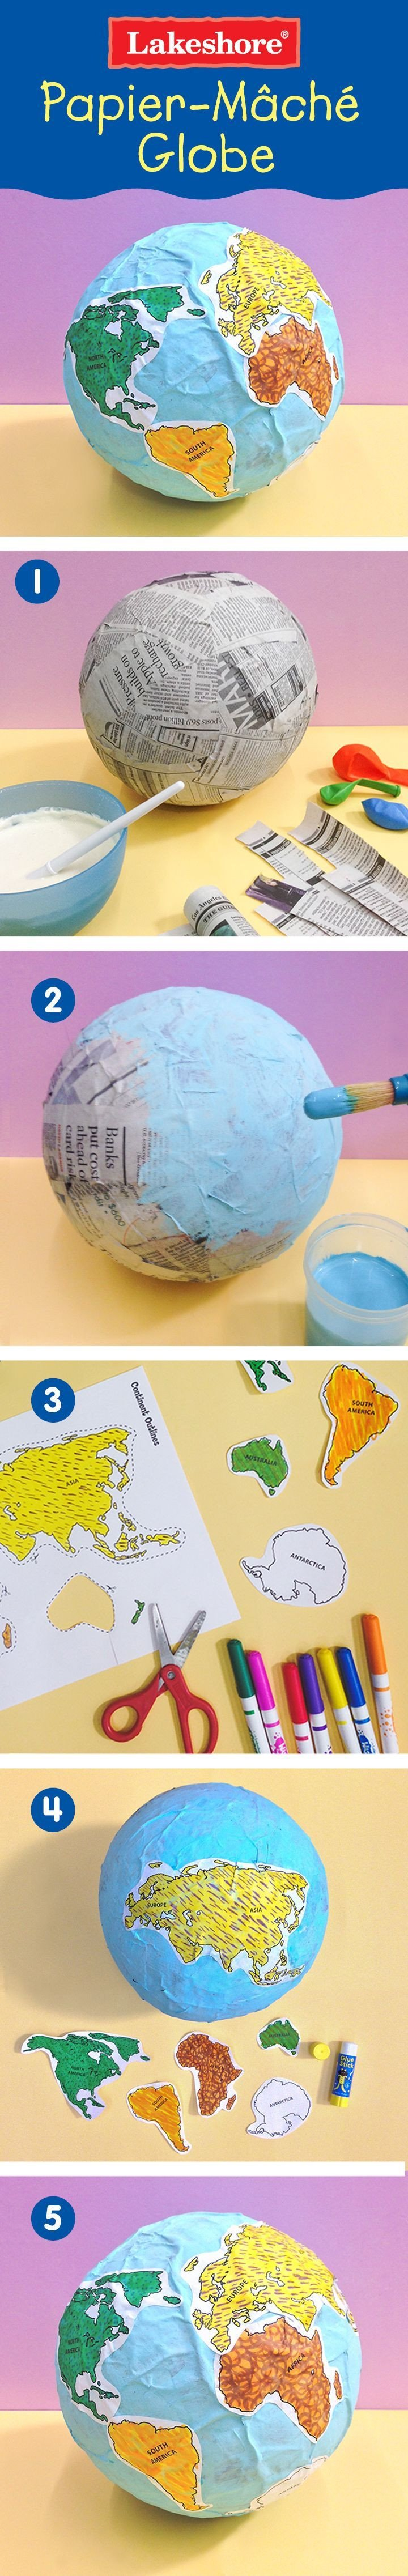 Continent Templates for Globe Paper Mache Globe Project with Printable Continent